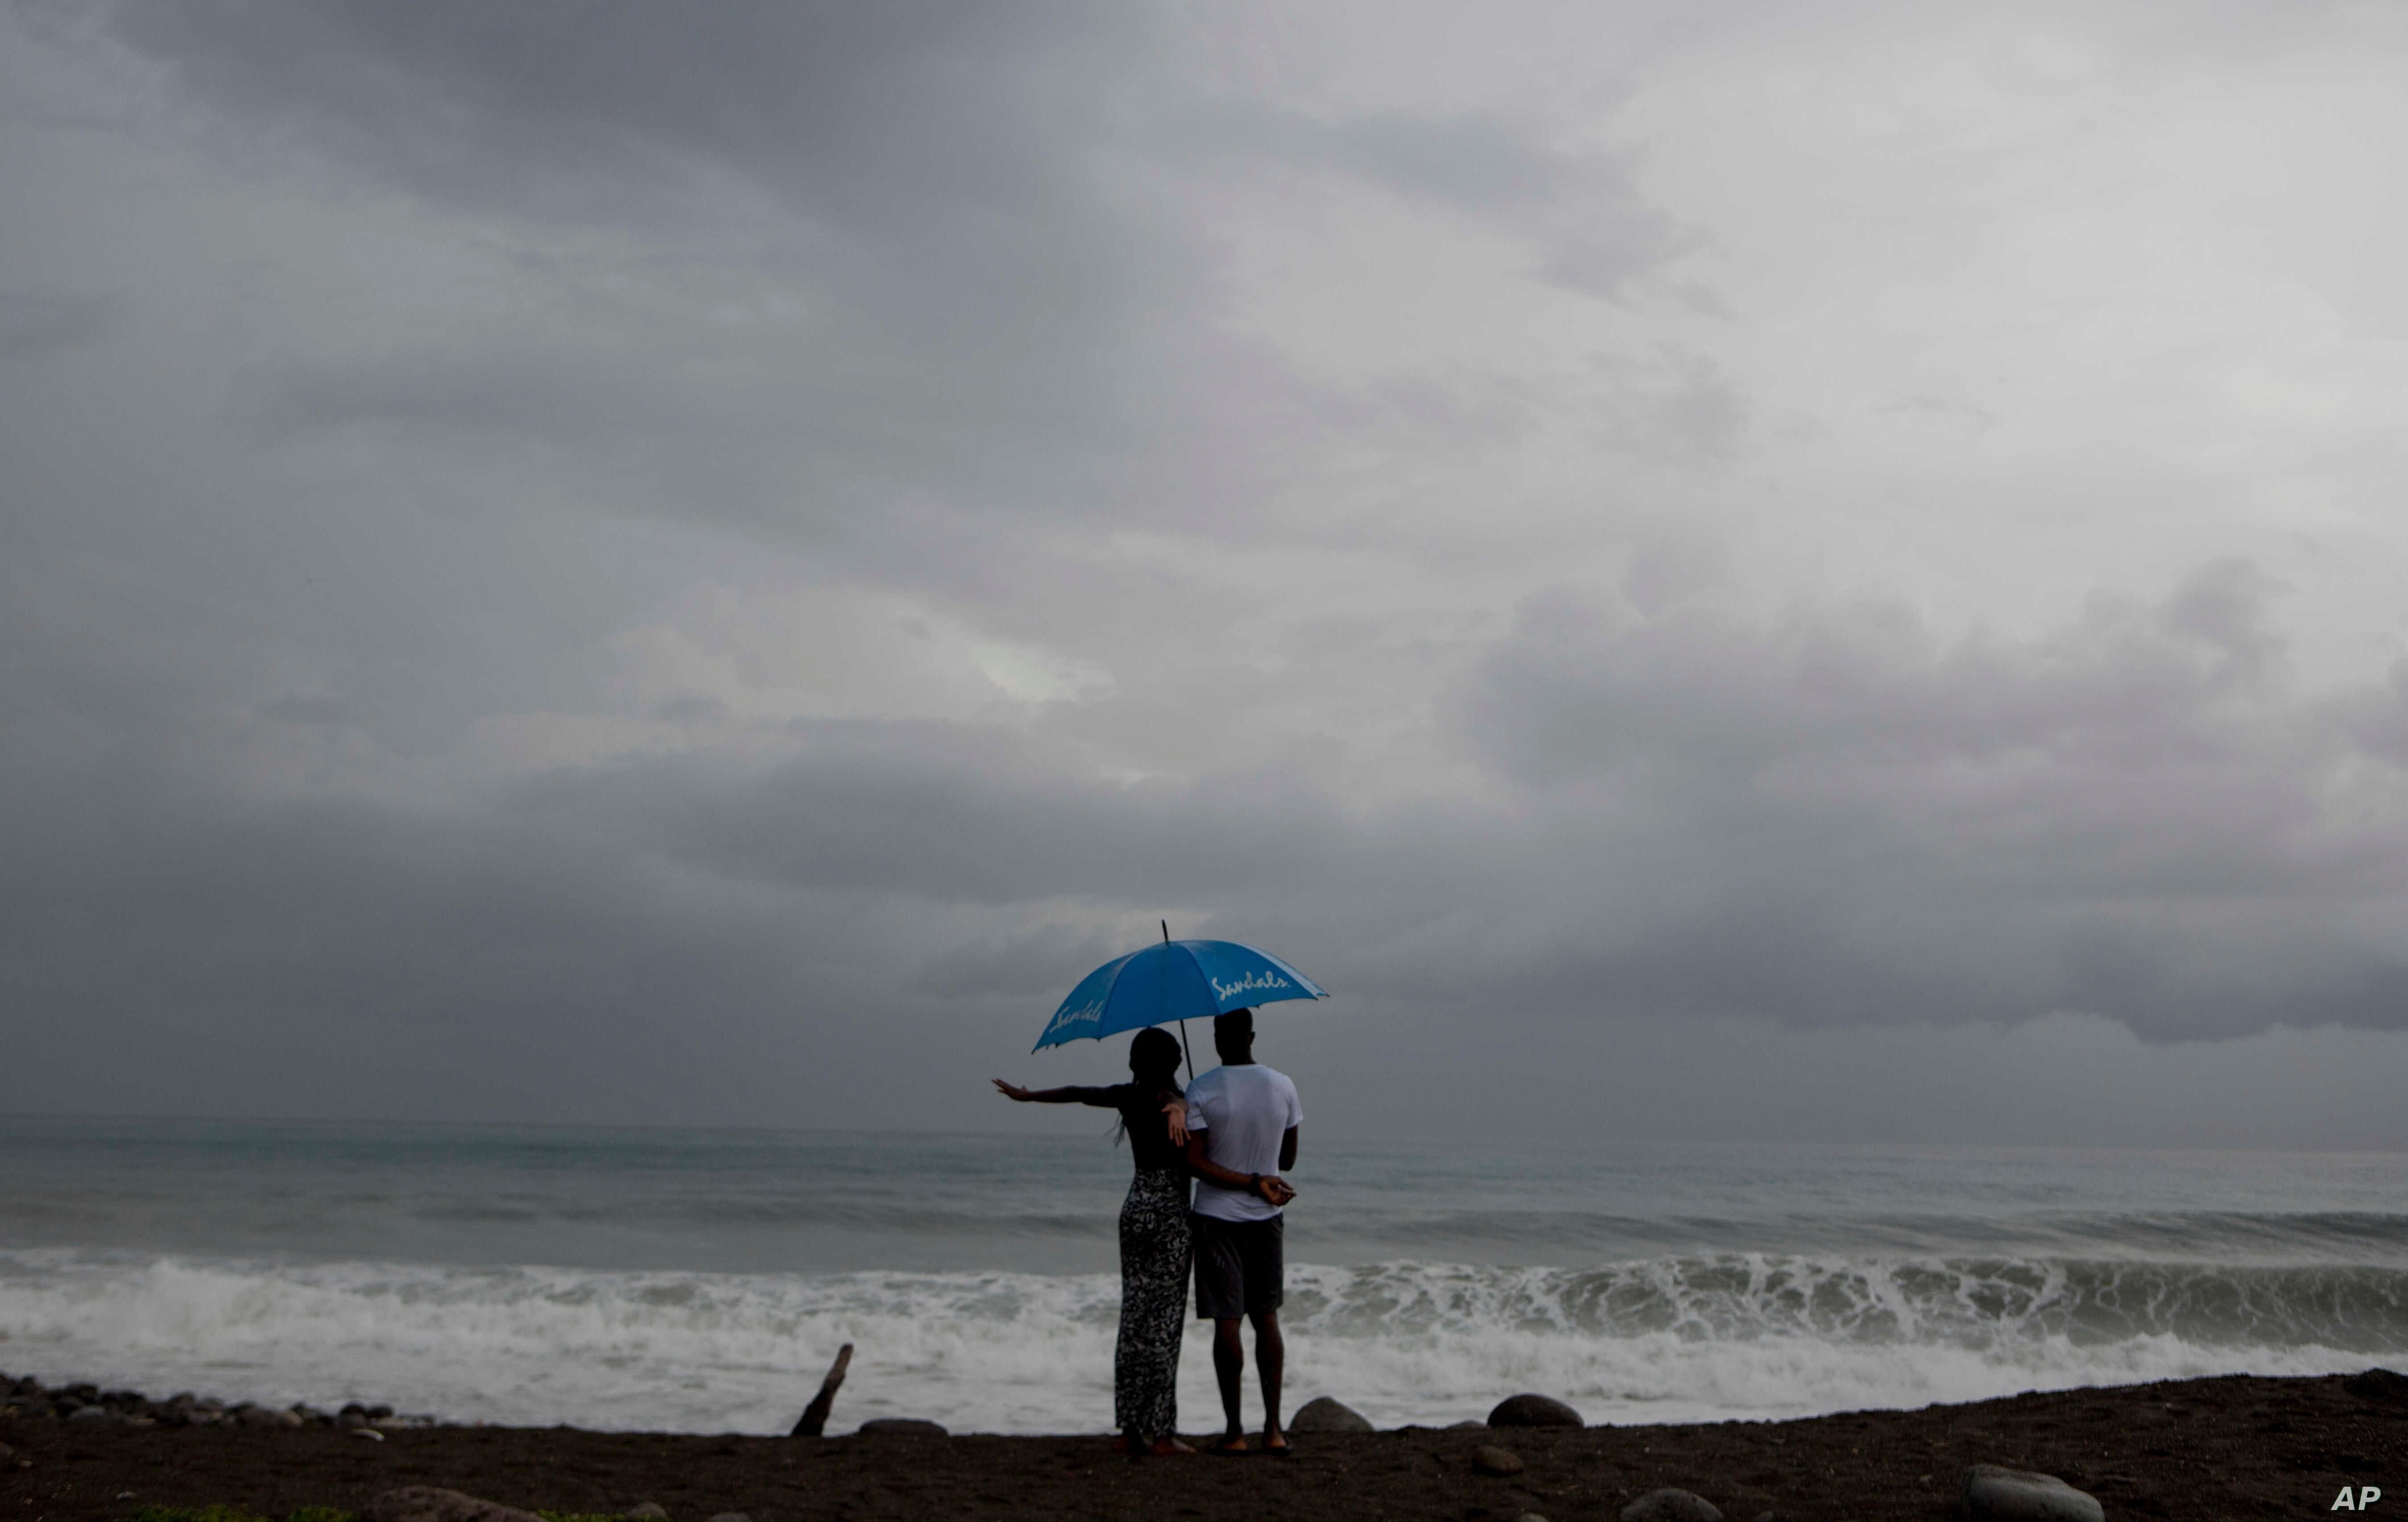 A couple watches the sea under rain in Kingston, Jamaica, Oct. 2, 2016. A depression in the southwestern Caribbean region is expected to become a tropical storm later in the day or overnight, the U.S. National Hurricane Center says.